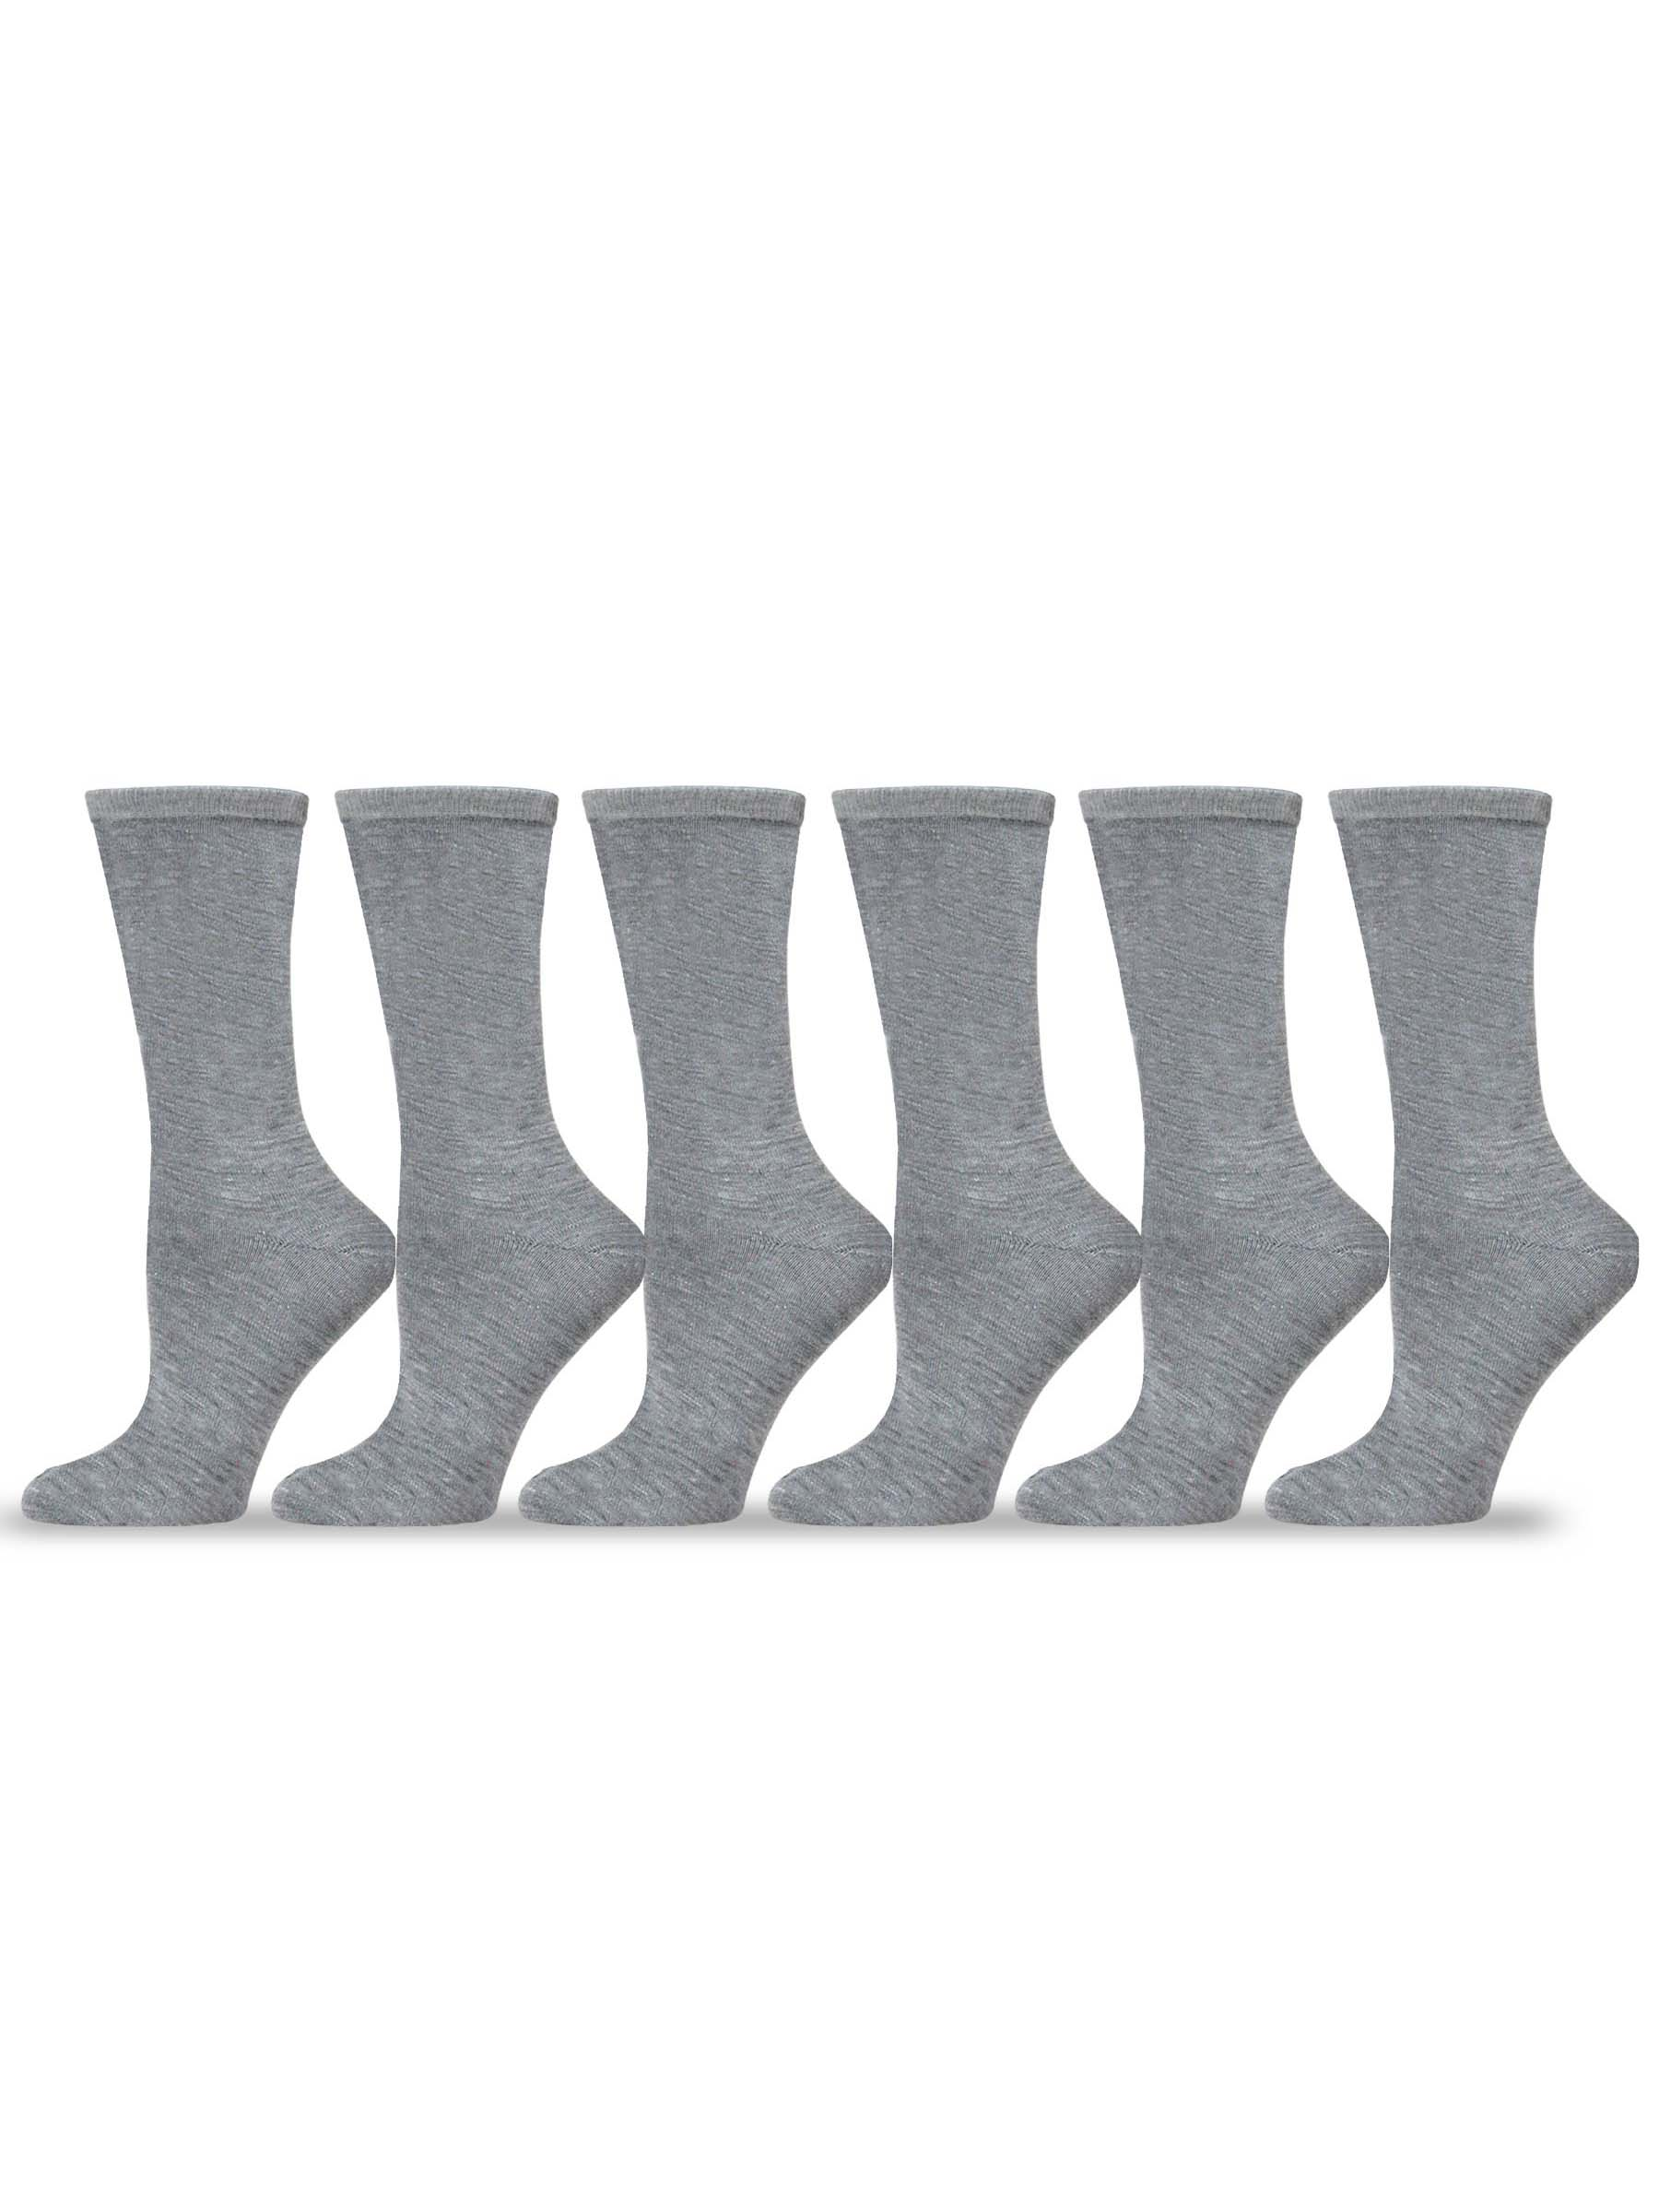 TeeHee Women's Ladies Value 6-Pack Crew Socks (Grey)